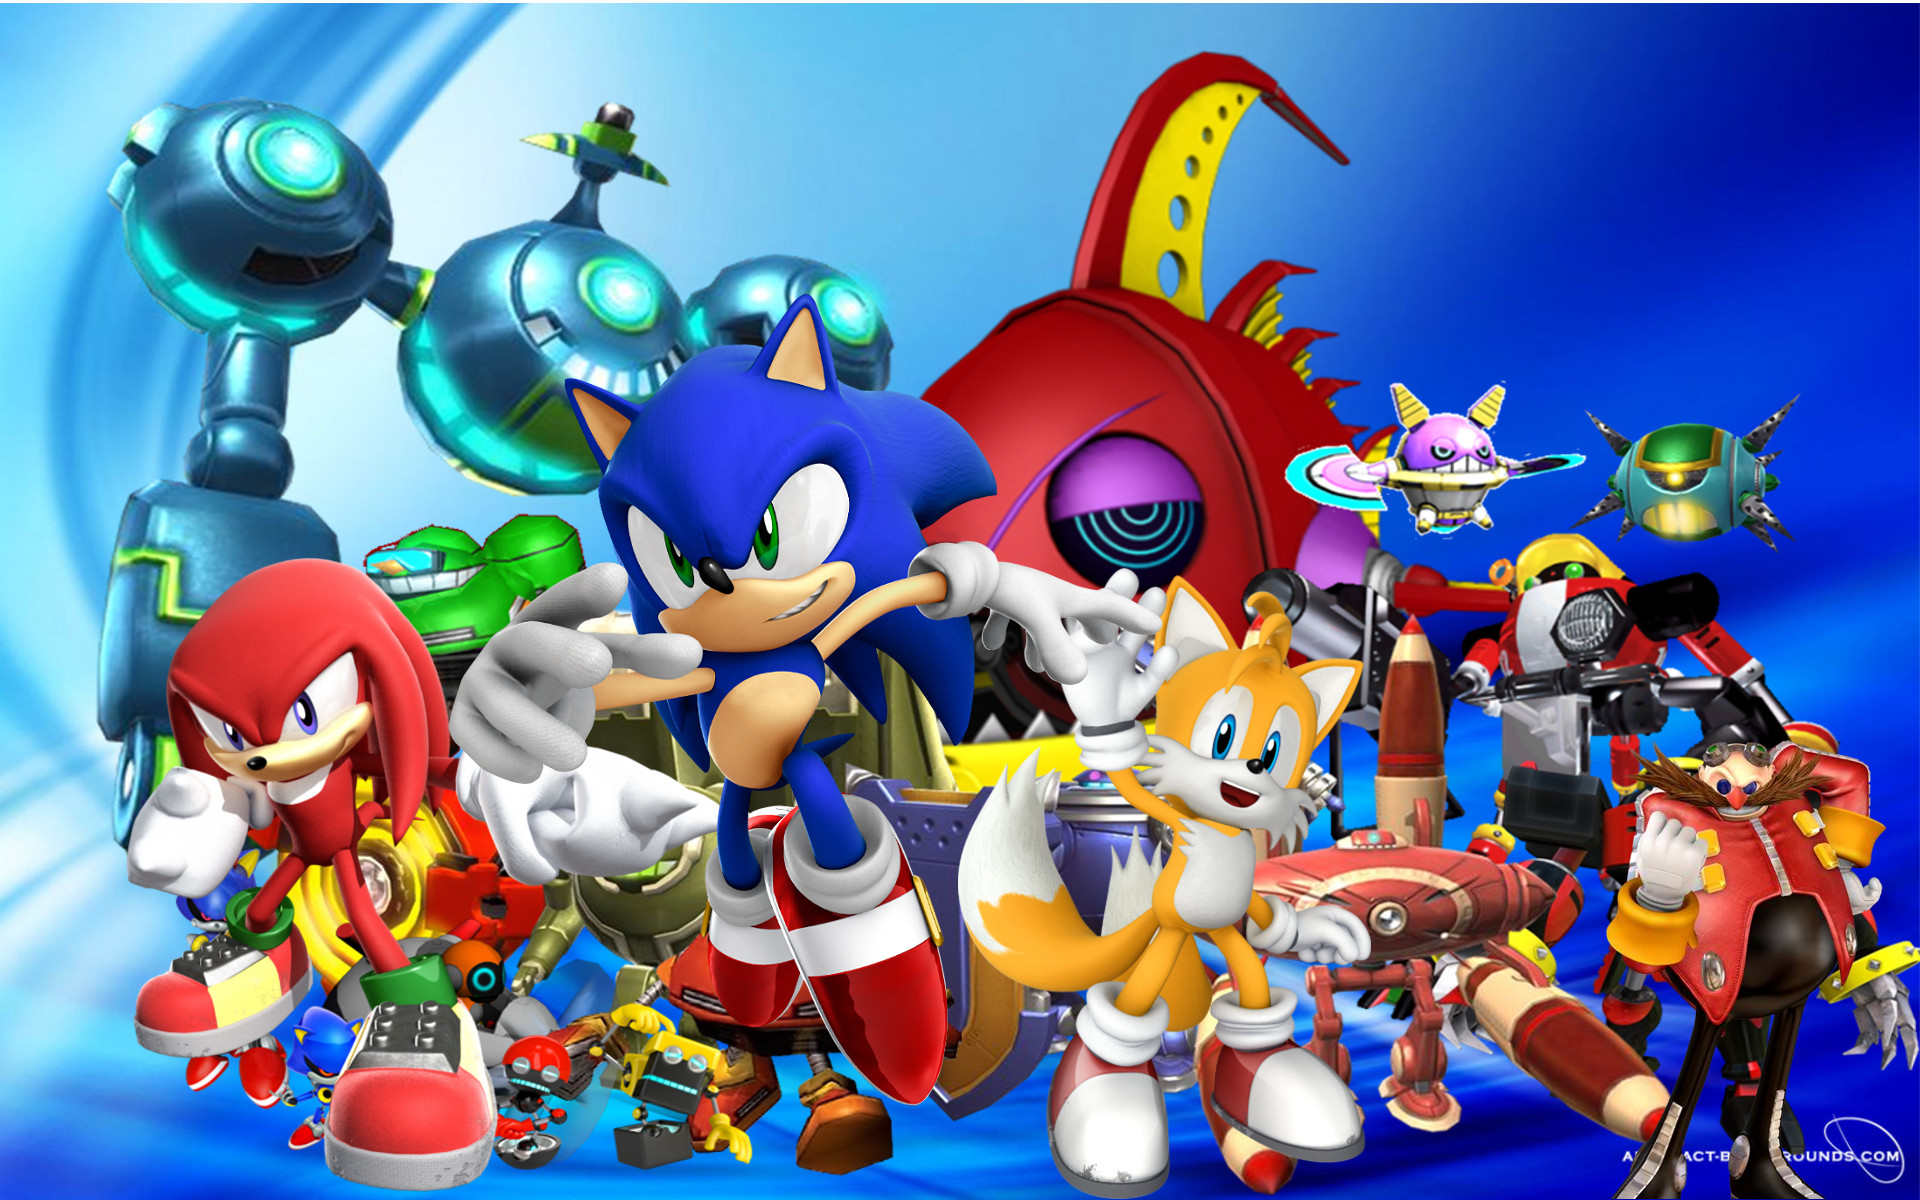 Colorful Sonic the Hedgehog wallpaper Background for PC